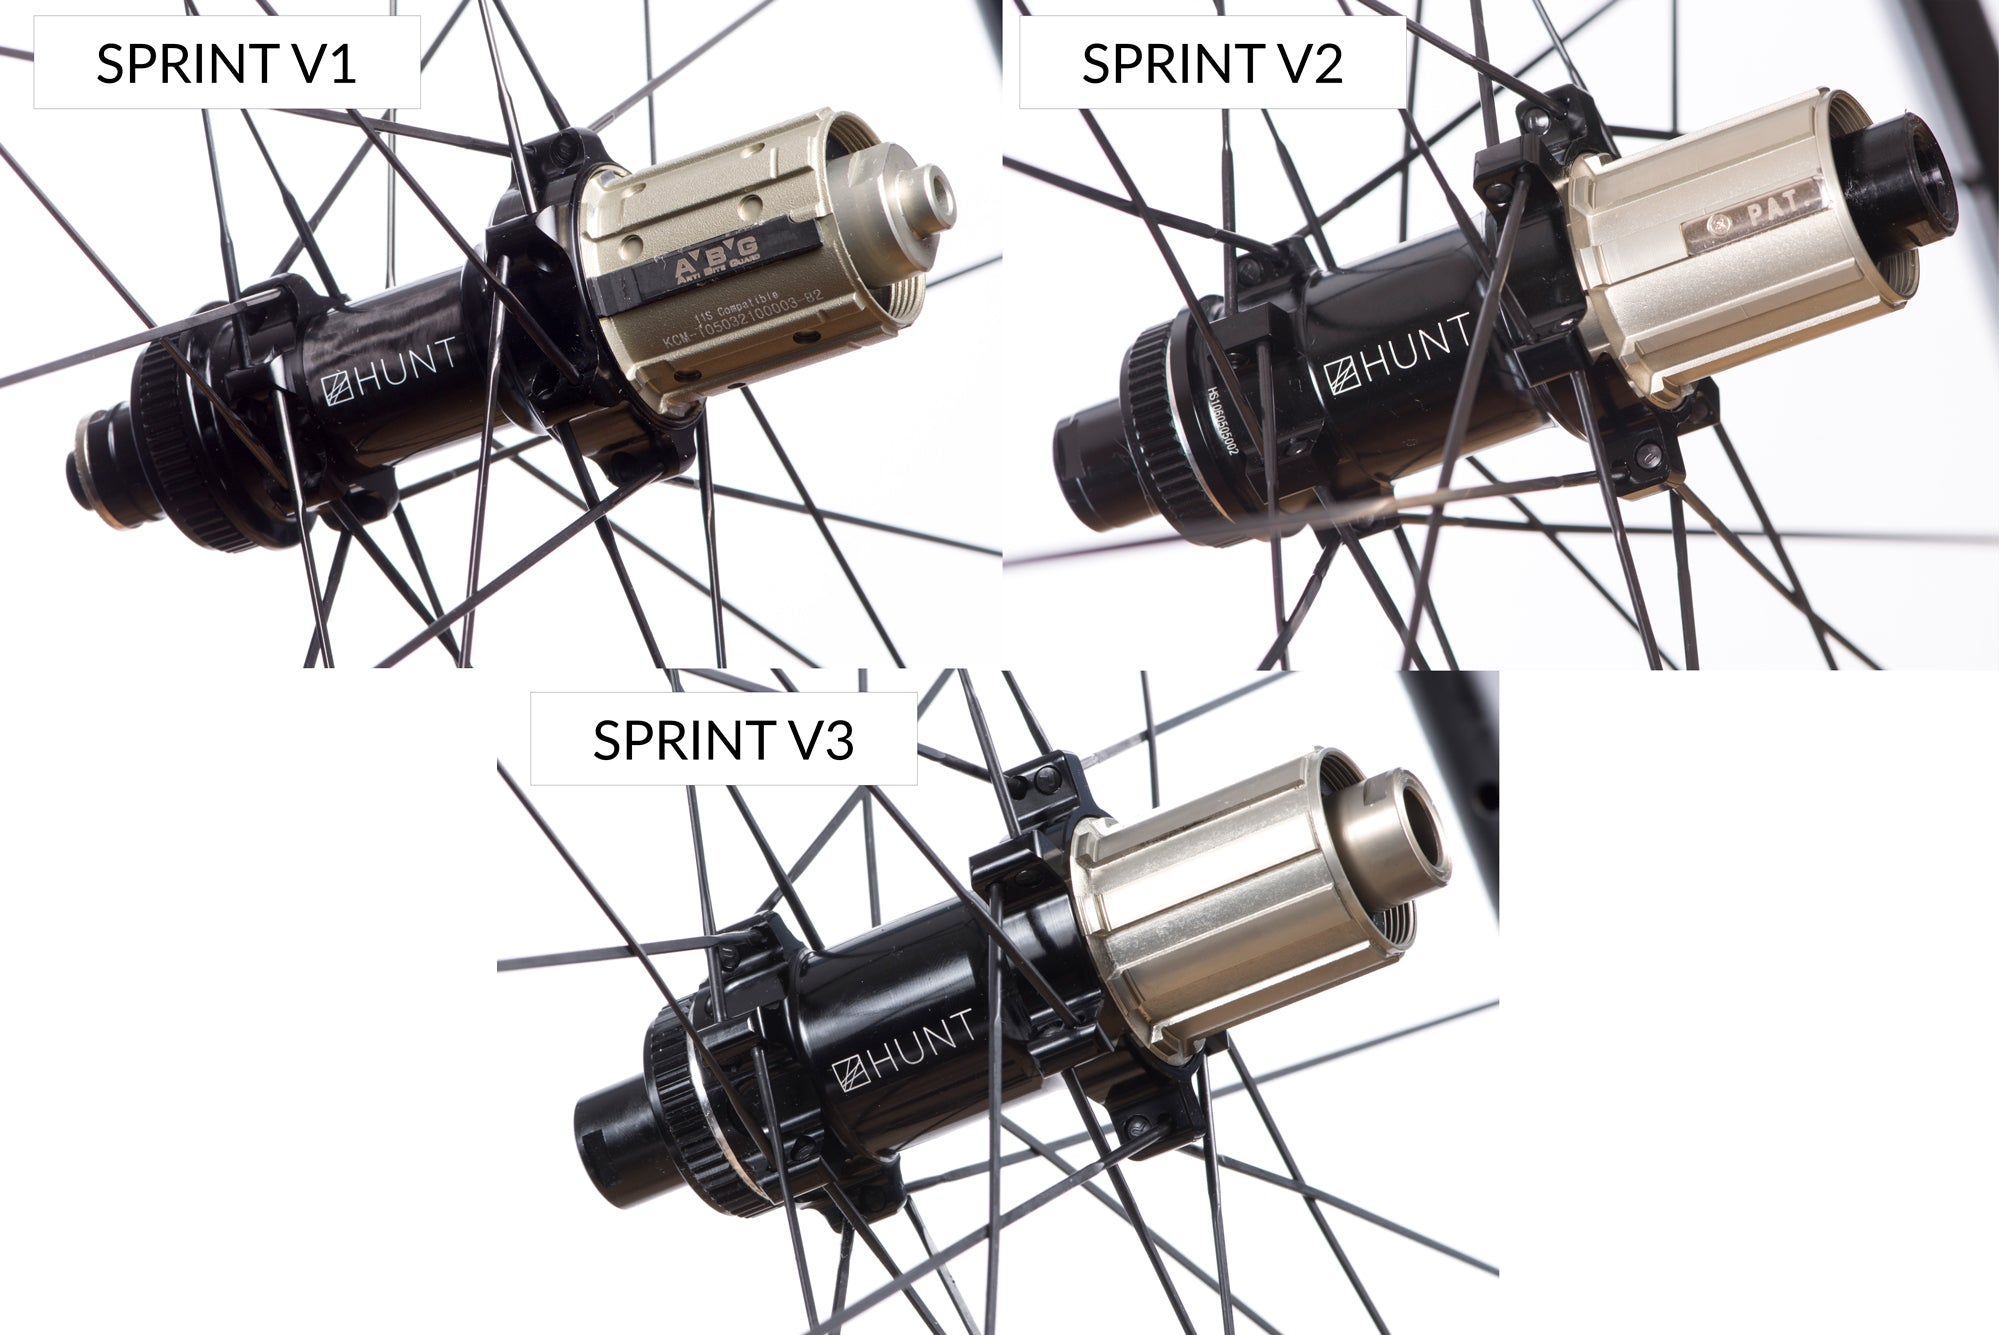 <h1>Sprint Hubs</h1> <ul> 	<li>Aero Light Disc Wheelset</li> 	<li>30 Carbon Aero Disc Wheelset</li> 	<li>4050 Carbon Aero Disc Wheelset</li> 	<li>50 Carbon Aero Disc Wheelset</li> 	<li>48 Limitless Aero Disc Wheelset</li> 	<li>38 Carbon Wide Disc Wheelset</li> 	<li>55 Carbon Wide Disc Wheelset</li> </ul>